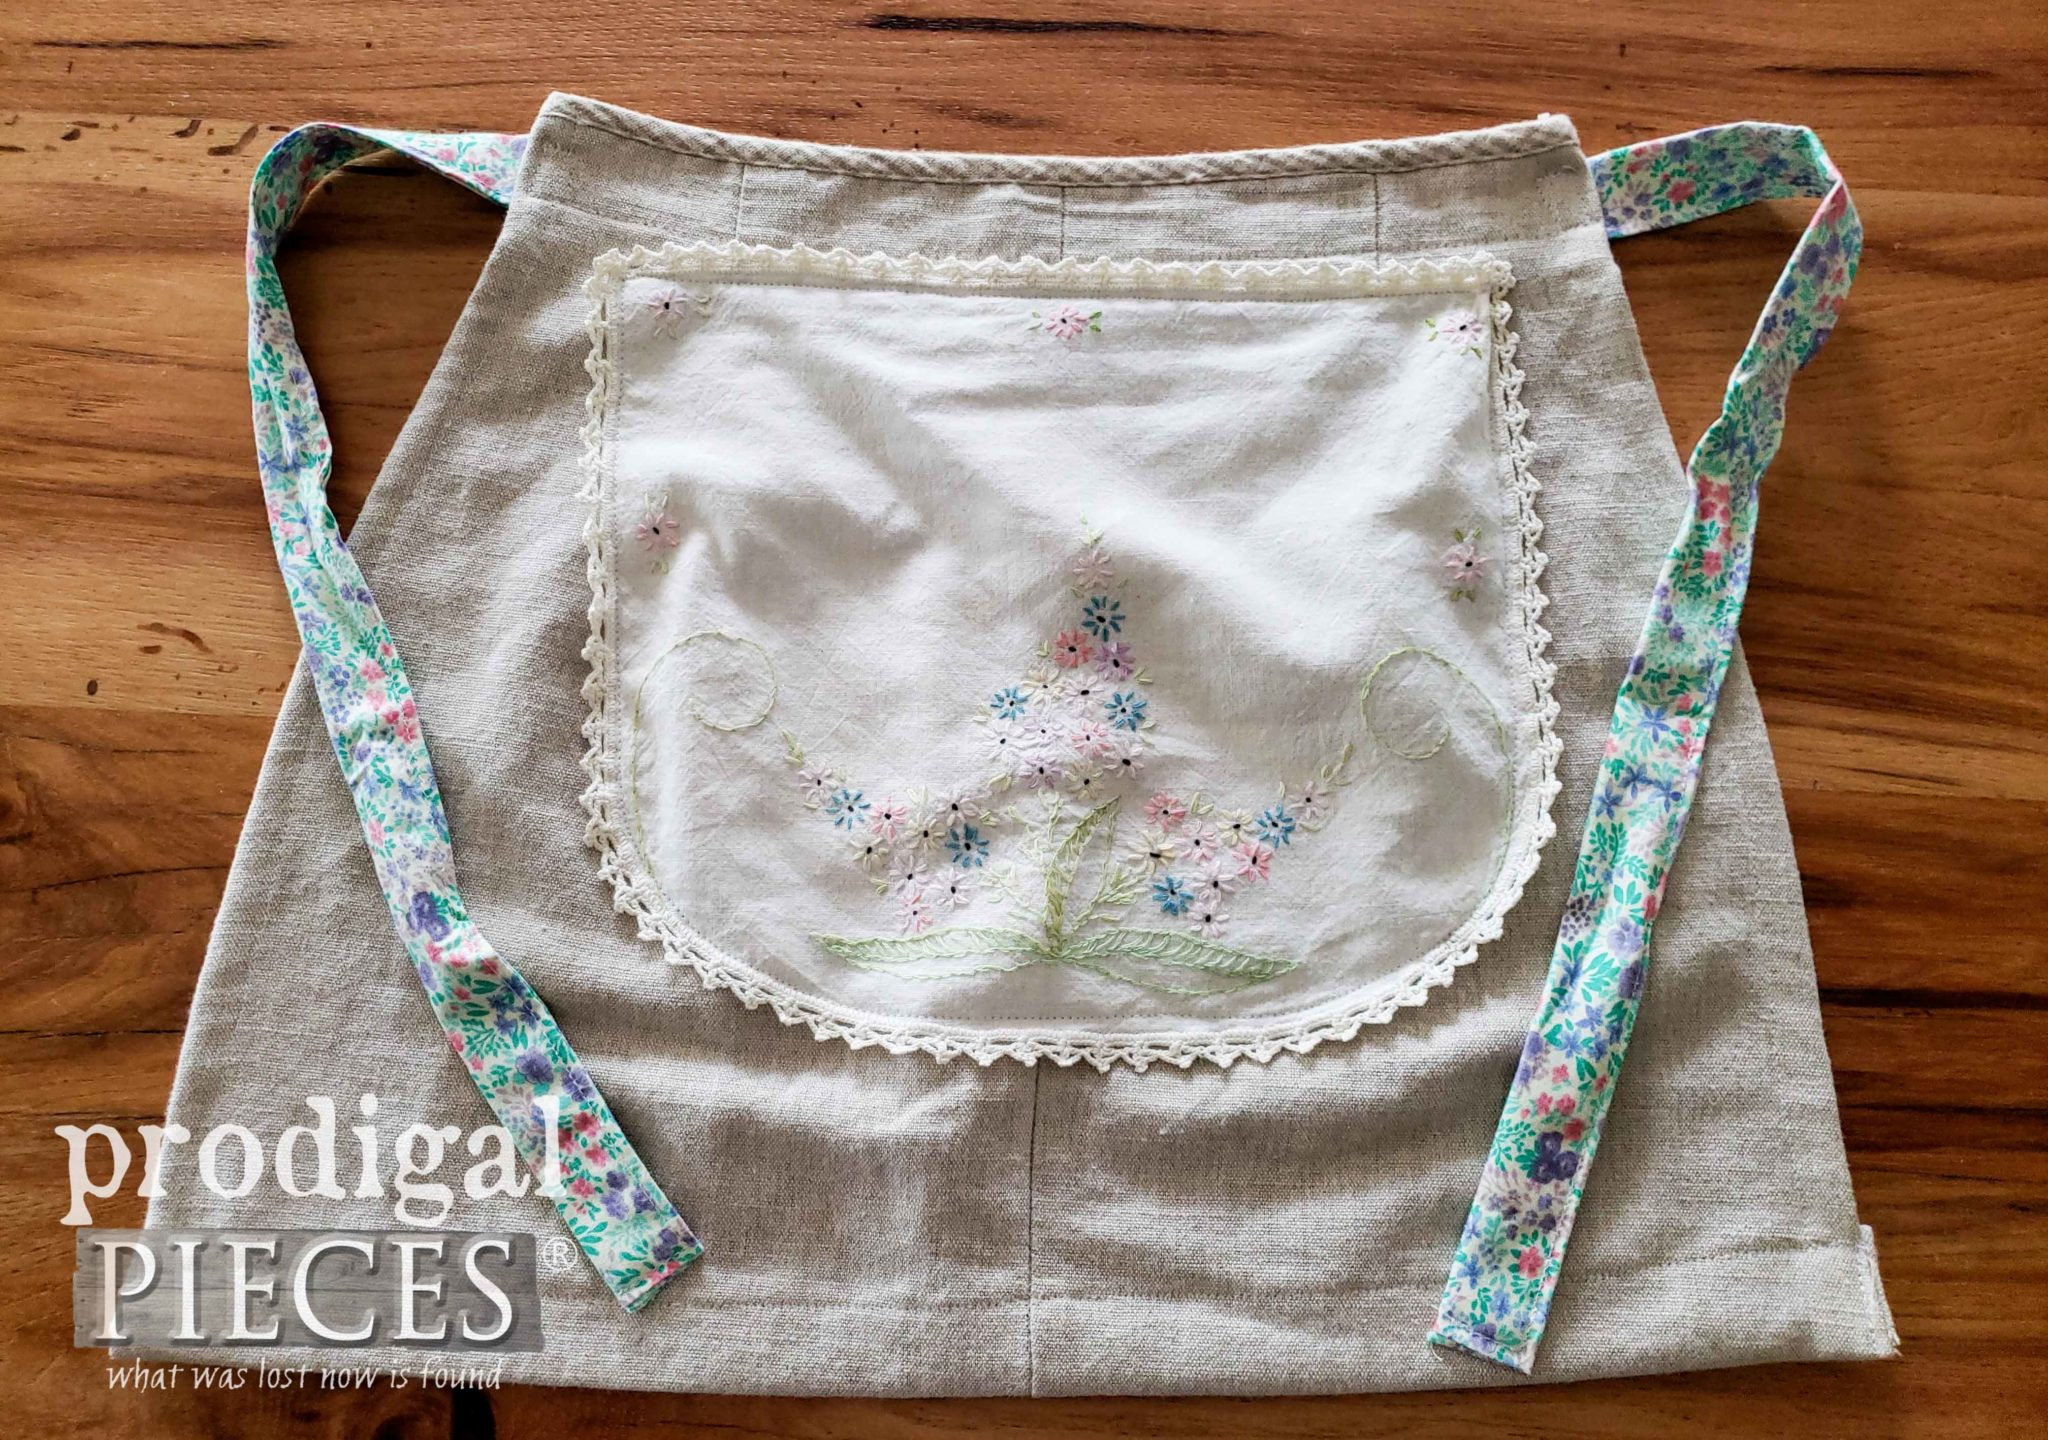 Handmade Linen Apron with Vintage Embroidery Applique by Larissa of Prodigal Pieces | prodigalpieces.com #prodigalpieces #sewing #kids #fashion #diy #handmade #vintage